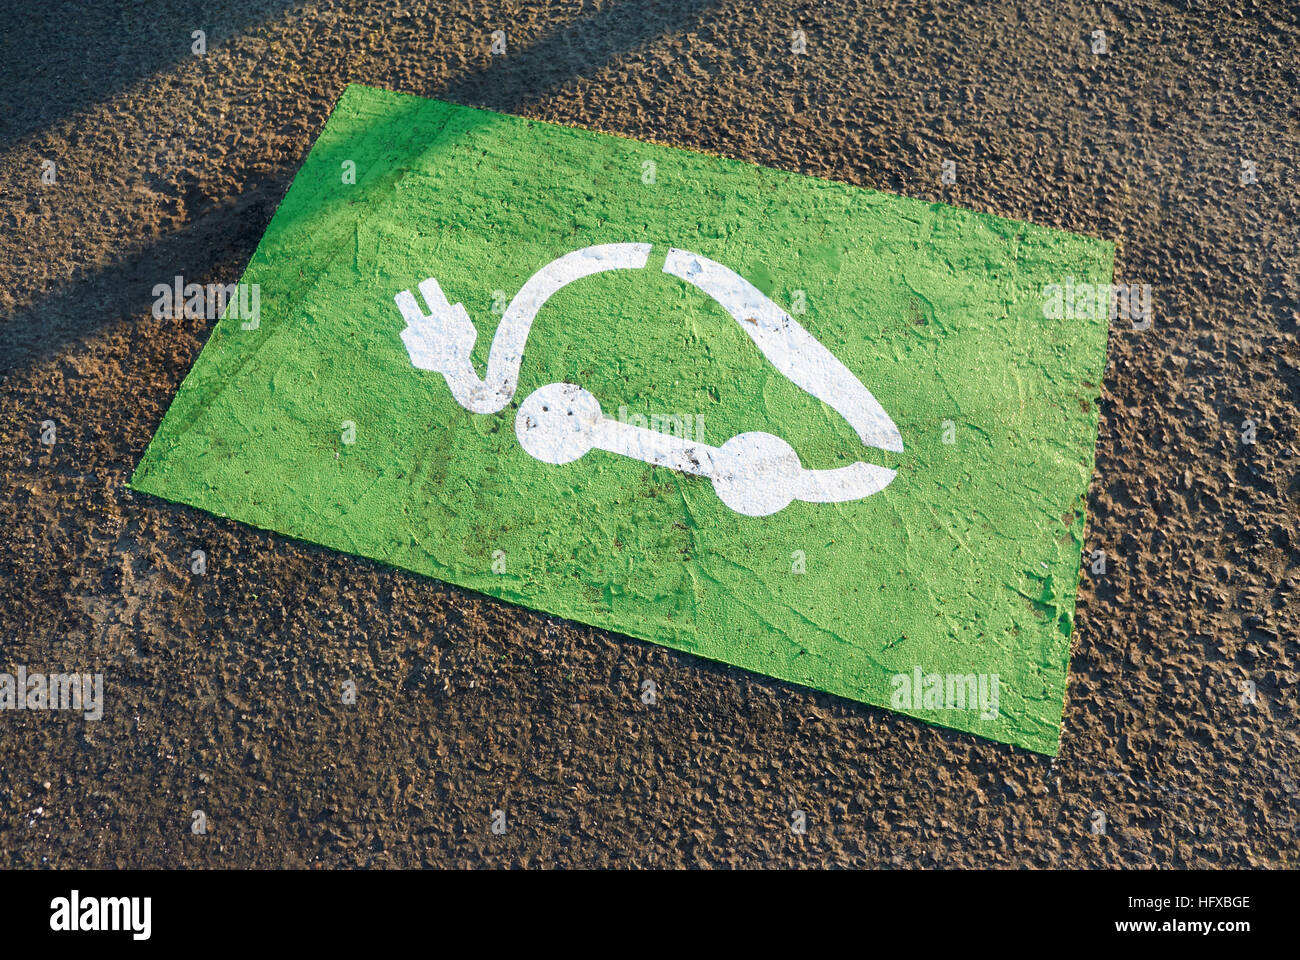 Electric car recharge symbol painted on the ground - Stock Image